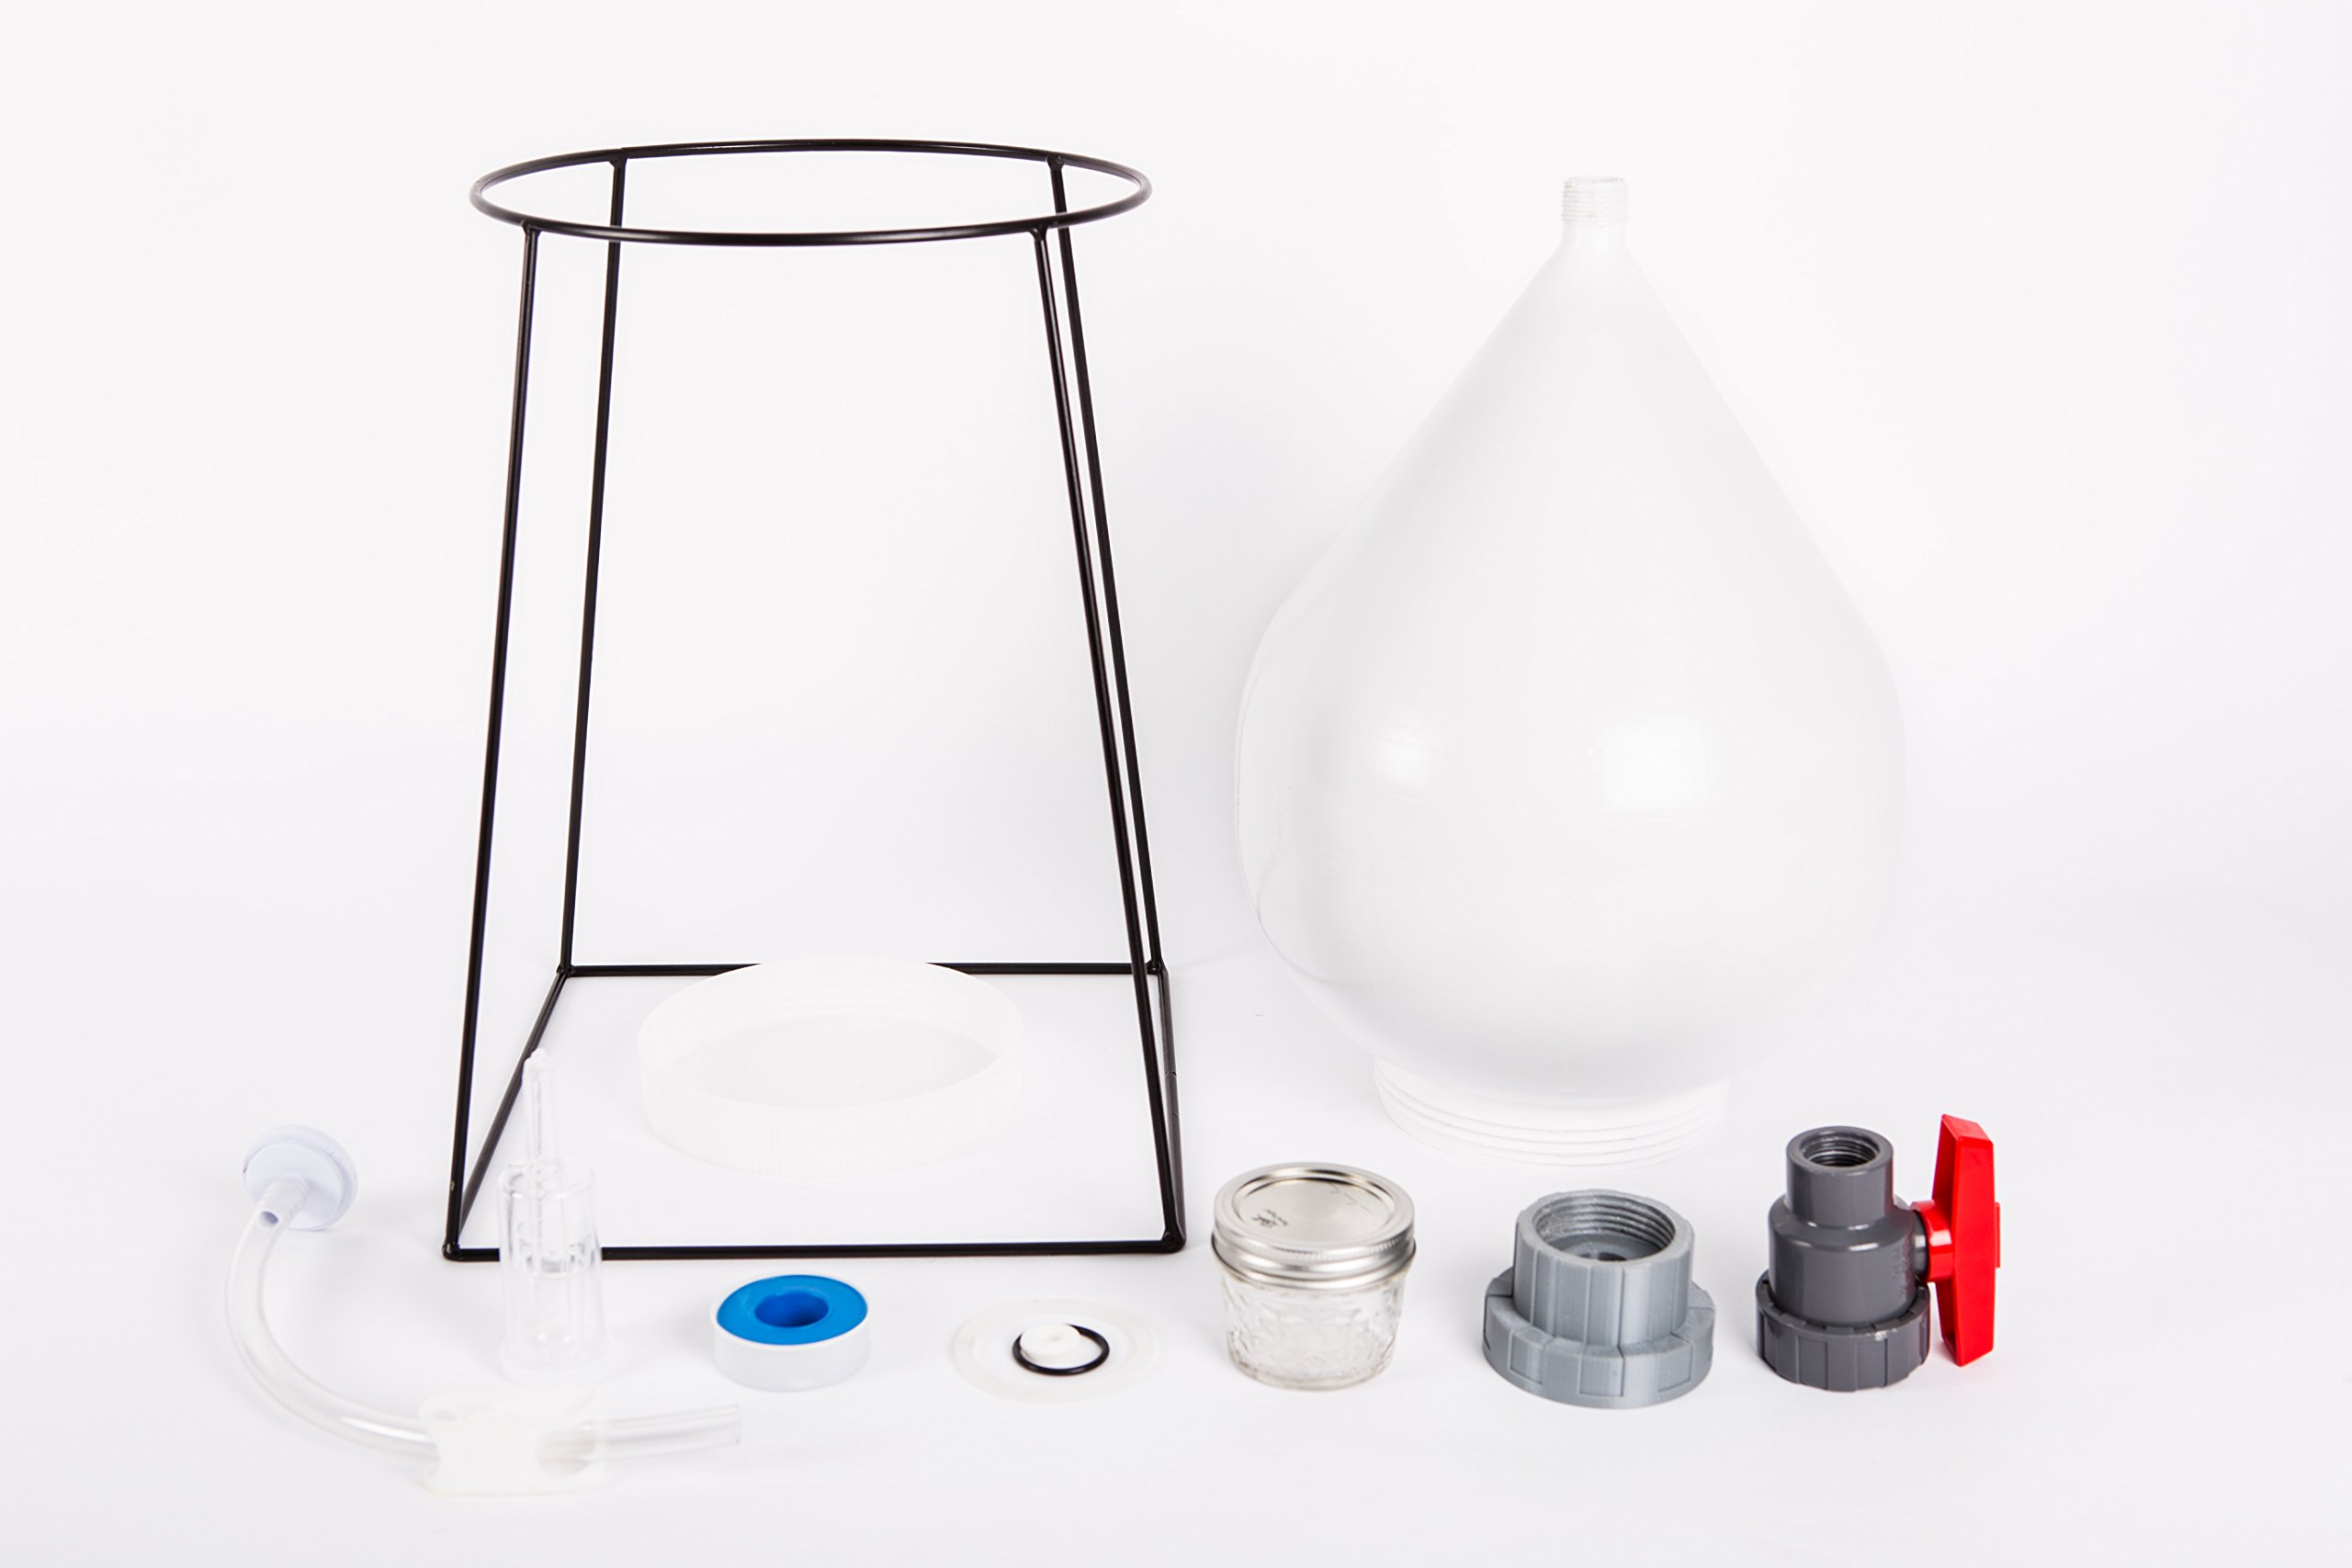 FastFerment Conical Fermenter - Home-Brew Kit - BPA Free Food Grade Primary Carboy Fermenter. Perfect 3 Gallon fermenter or a Small Batch 1 Gallon fermenter. Stand and All Hardware incl (3 Gallon) by FastFerment (Image #4)